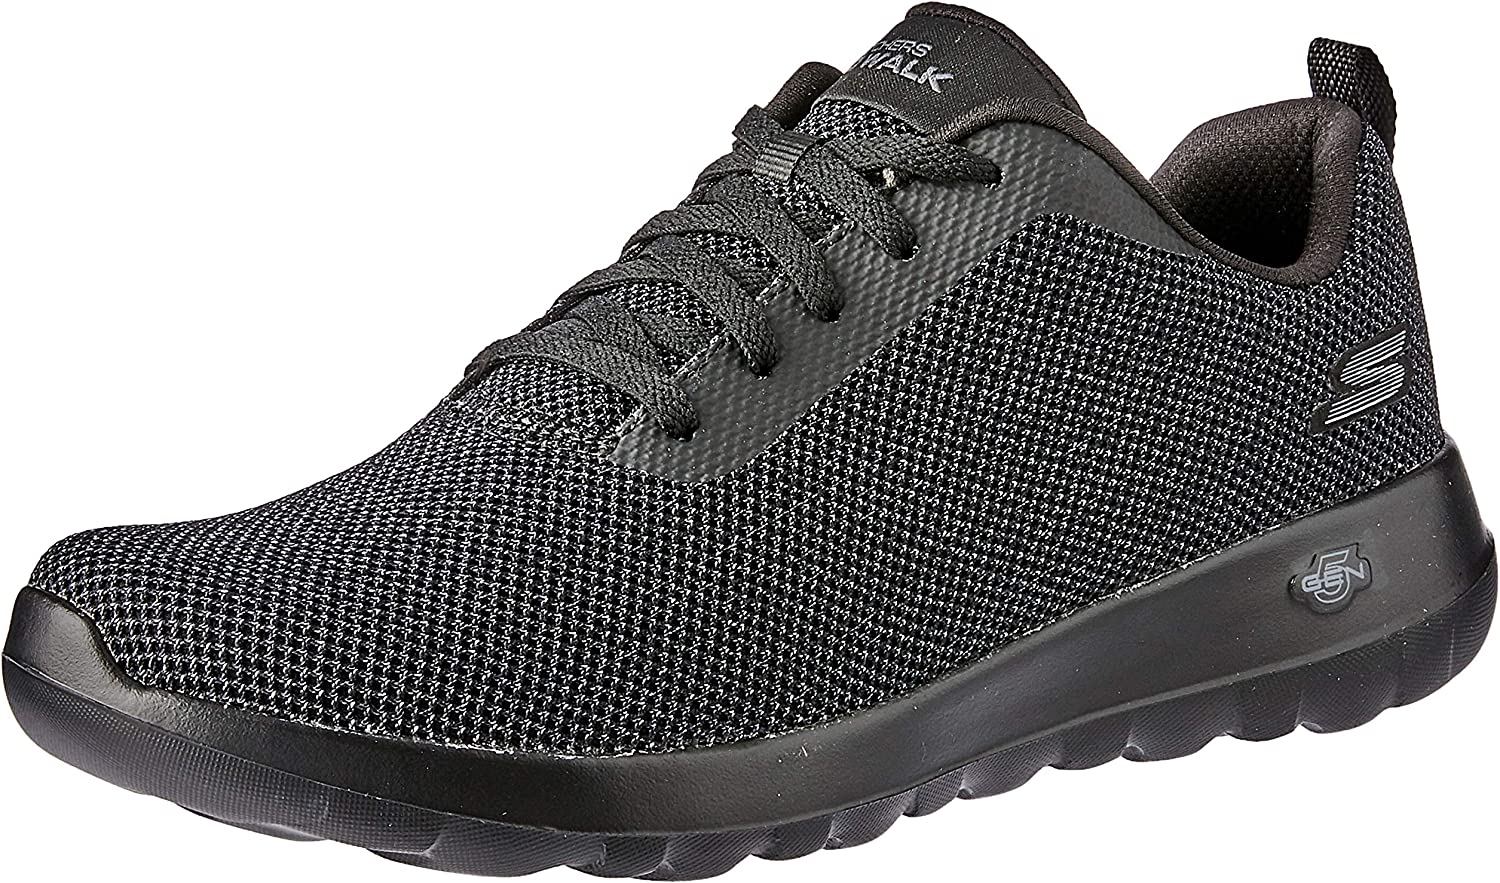 Skechers Women's GO Walk Joy Lace Up Walking shoes